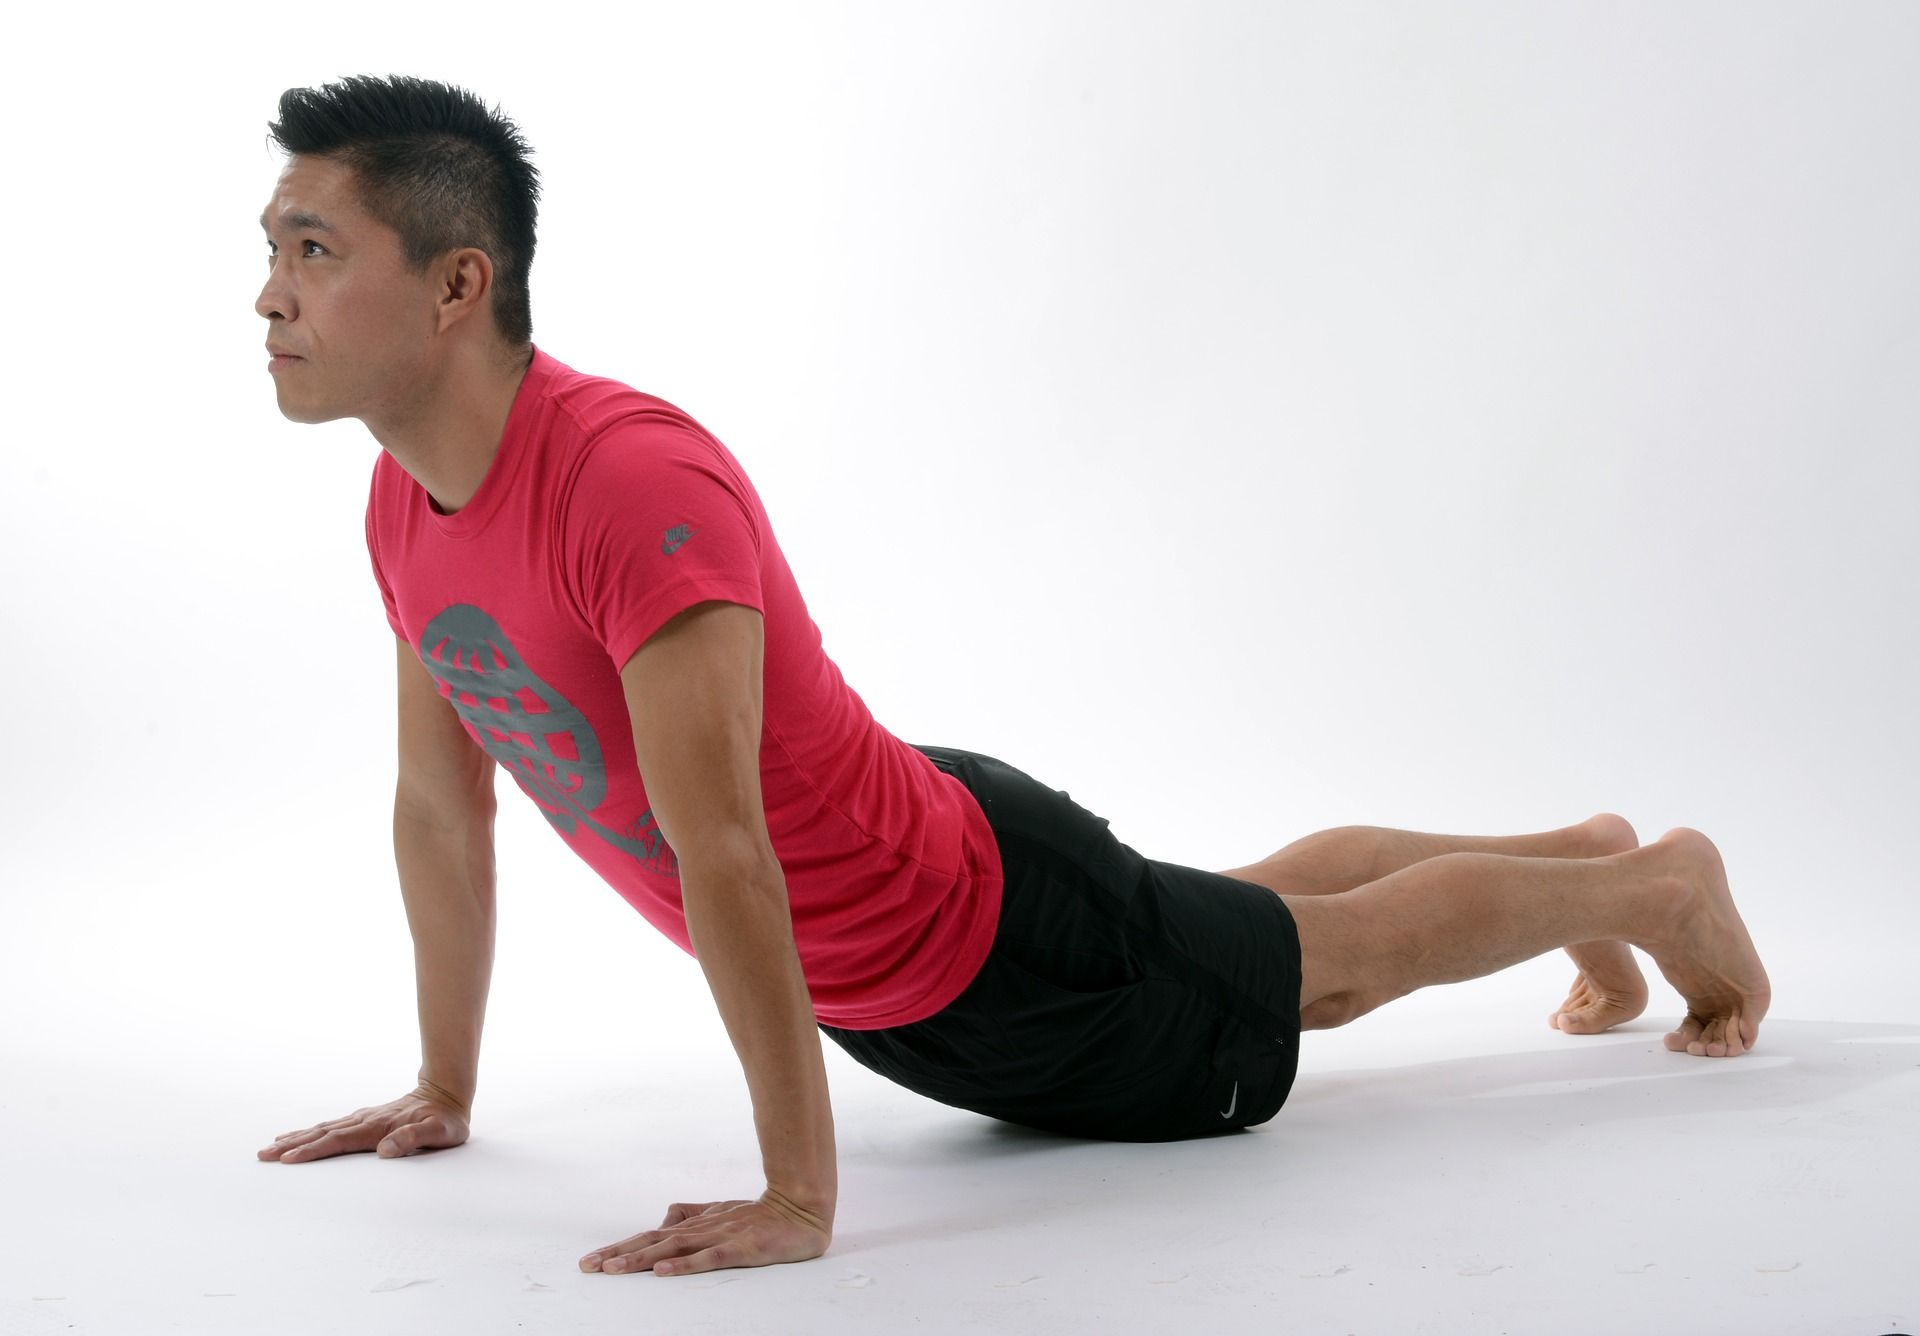 beginner yoga poses for men upward Facing Dog